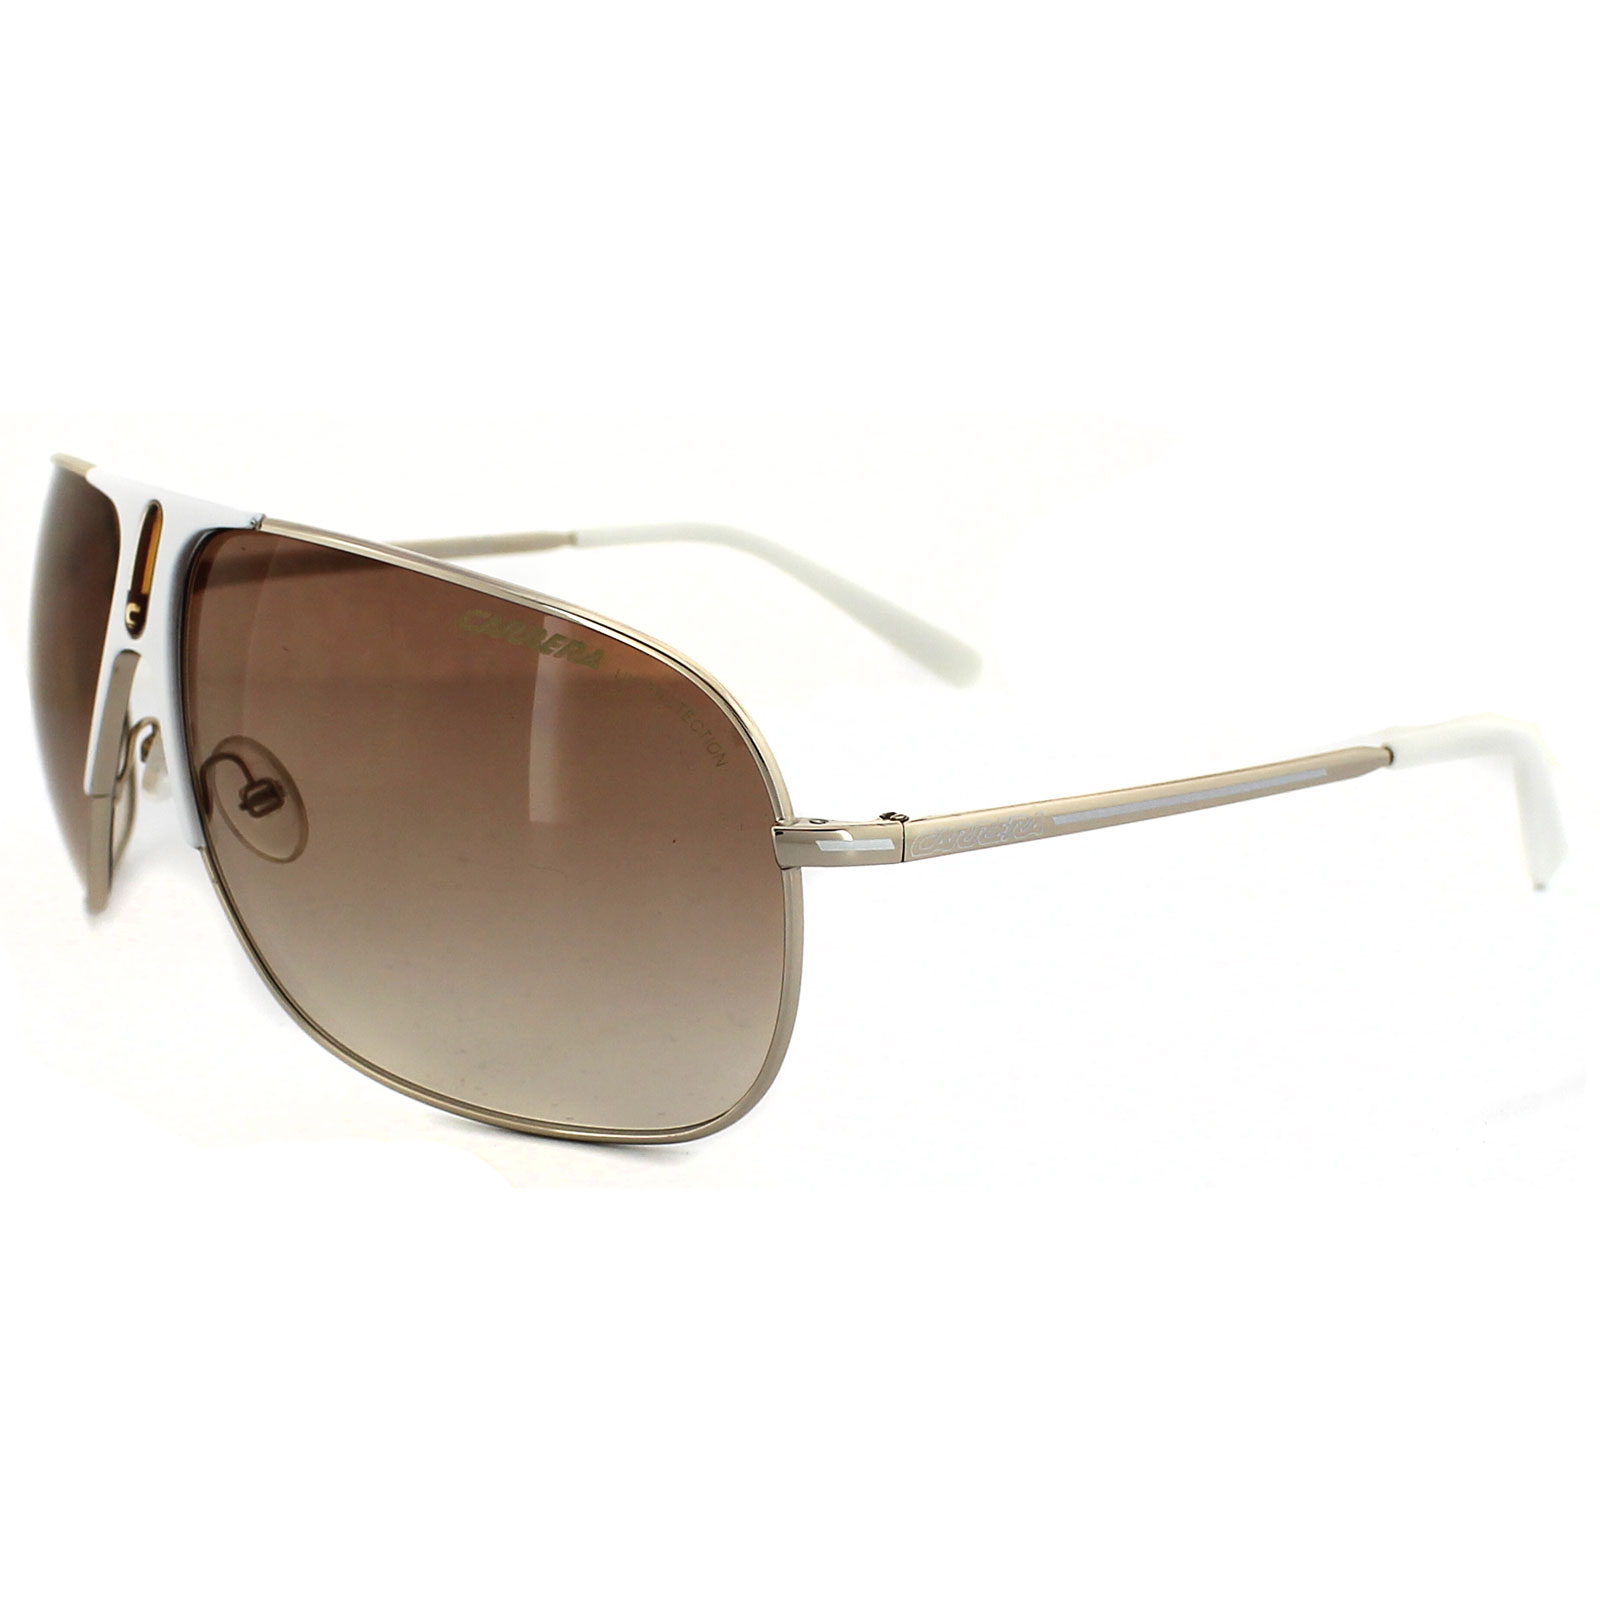 Carrera Sunglasses Brown  carrera sunglasses back 80 039 s 5 vfq id gold white brown